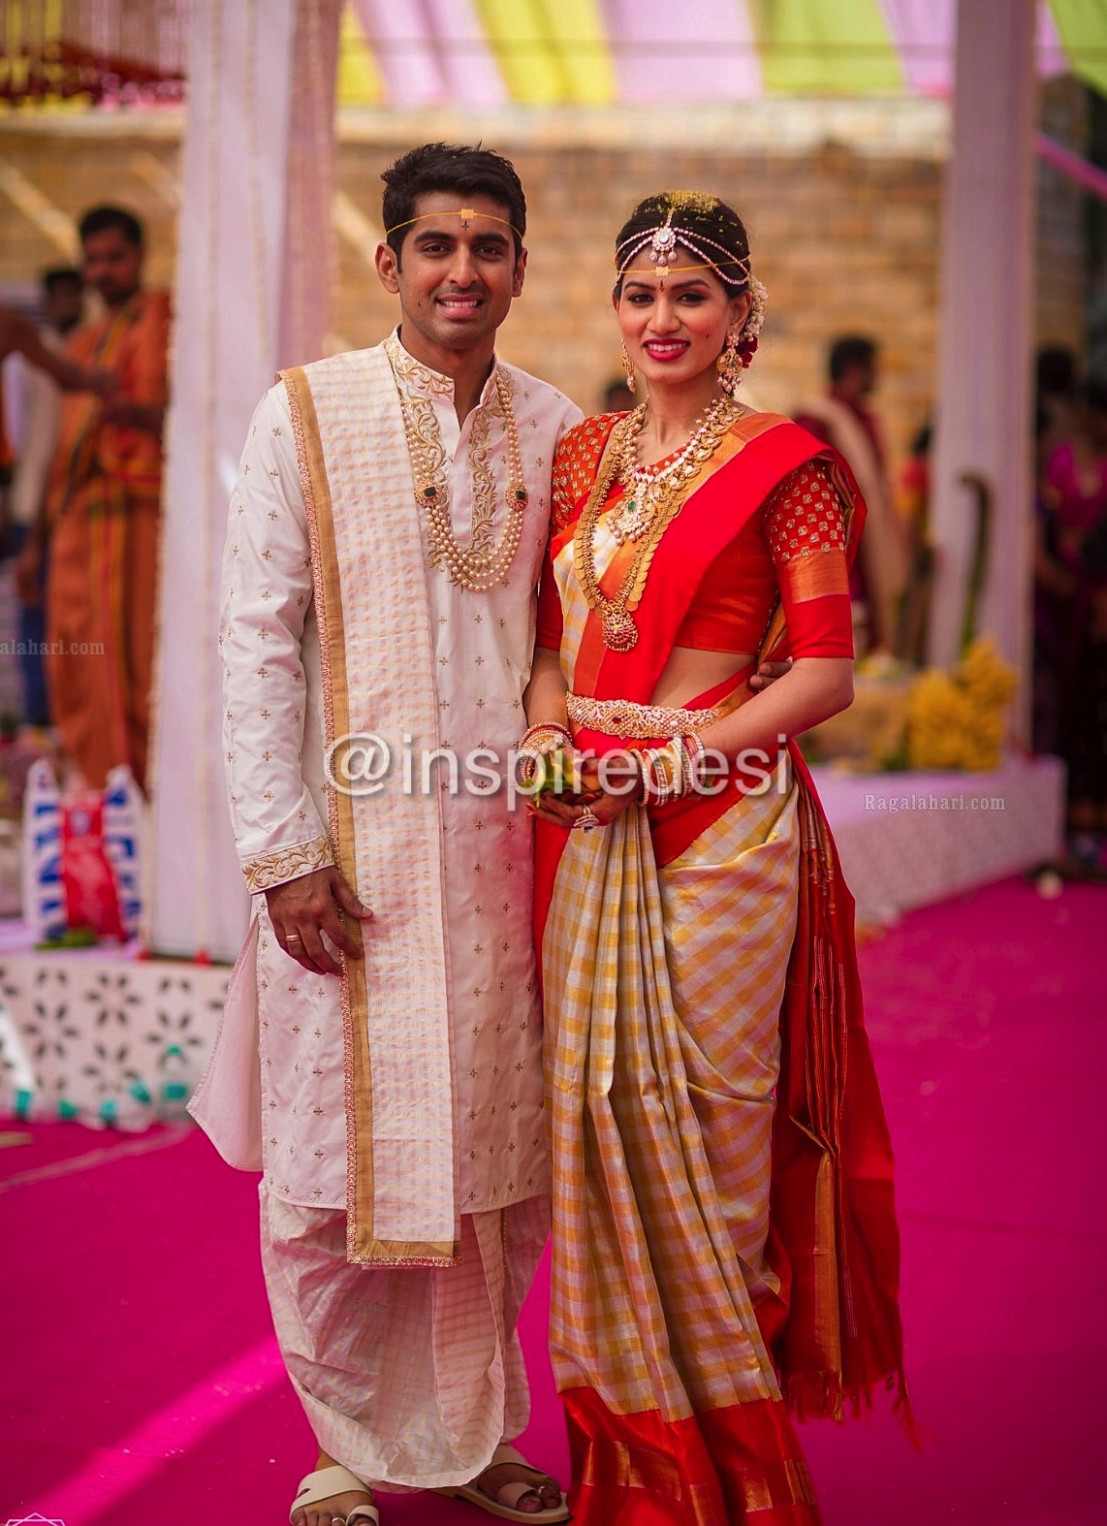 Indian Dresses: South Indian Bride and Groom